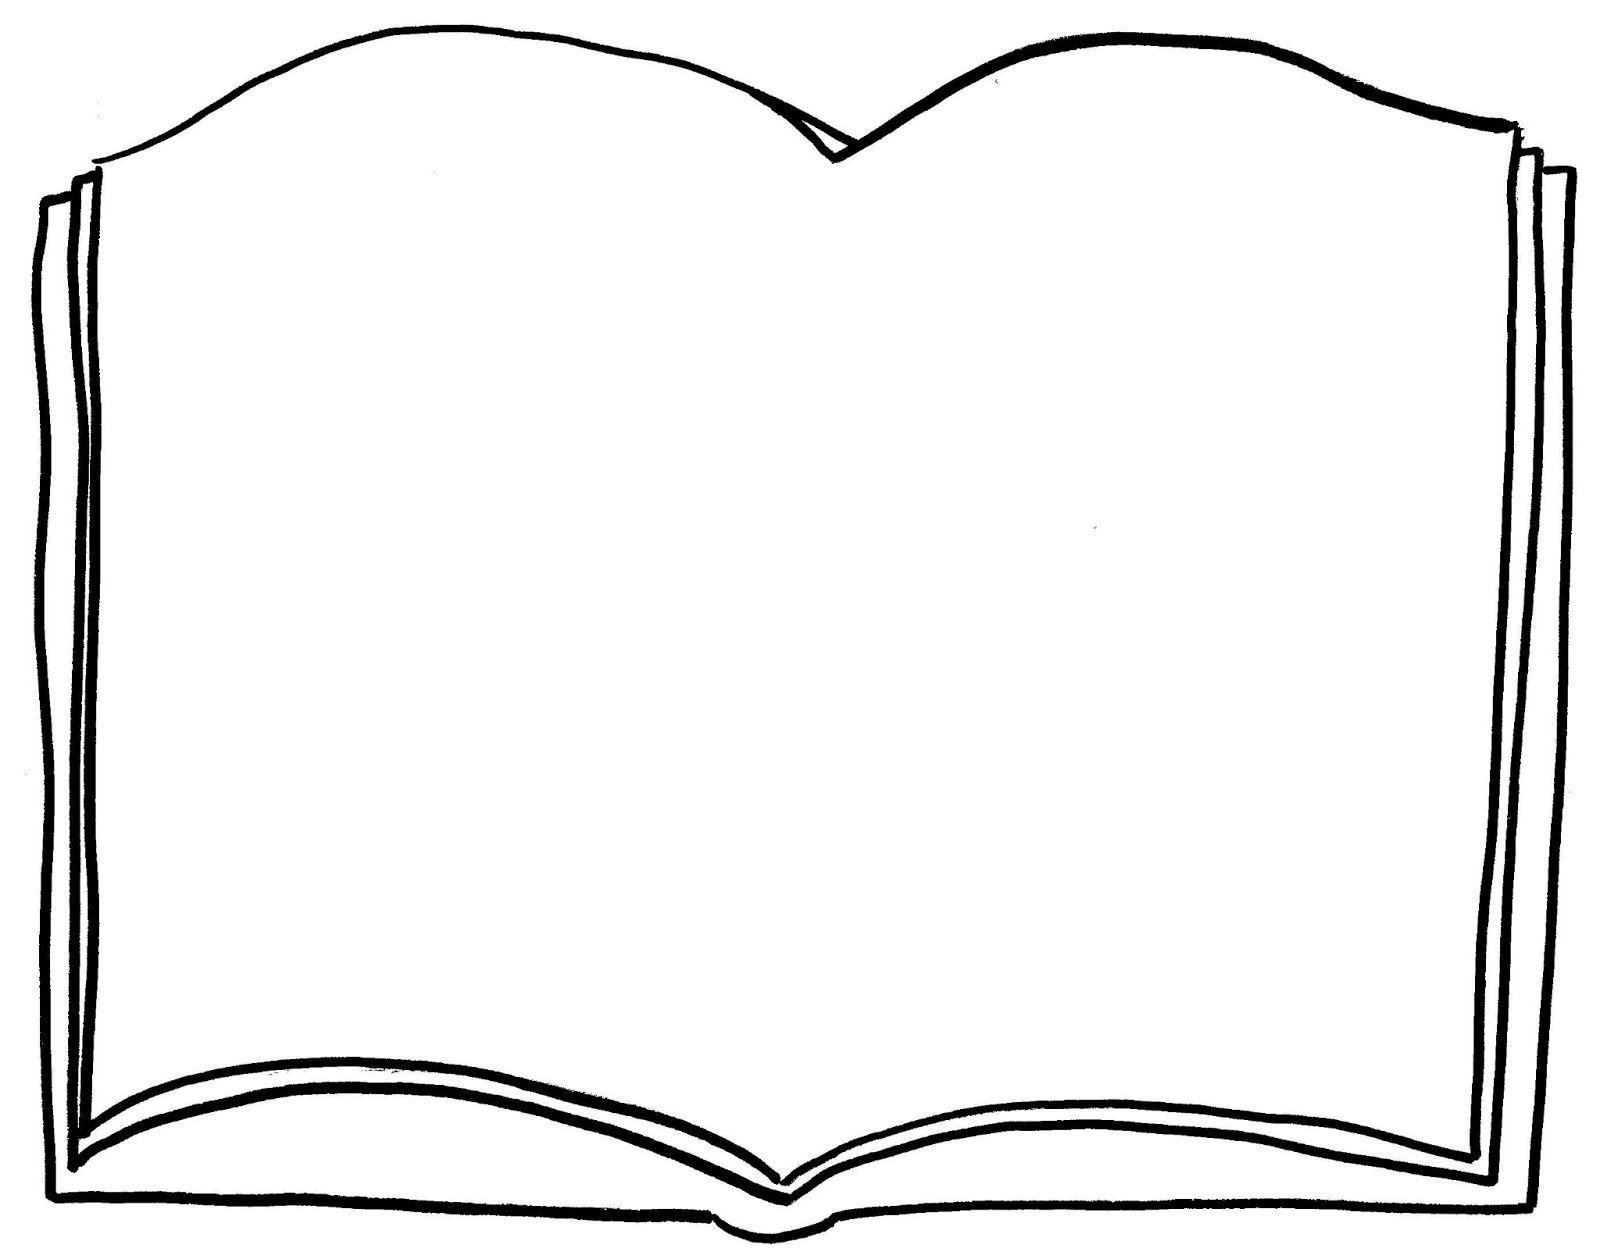 Book page blank clipart black and white png royalty free library Picture Of An Open Book | Free download best Picture Of An Open Book ... png royalty free library